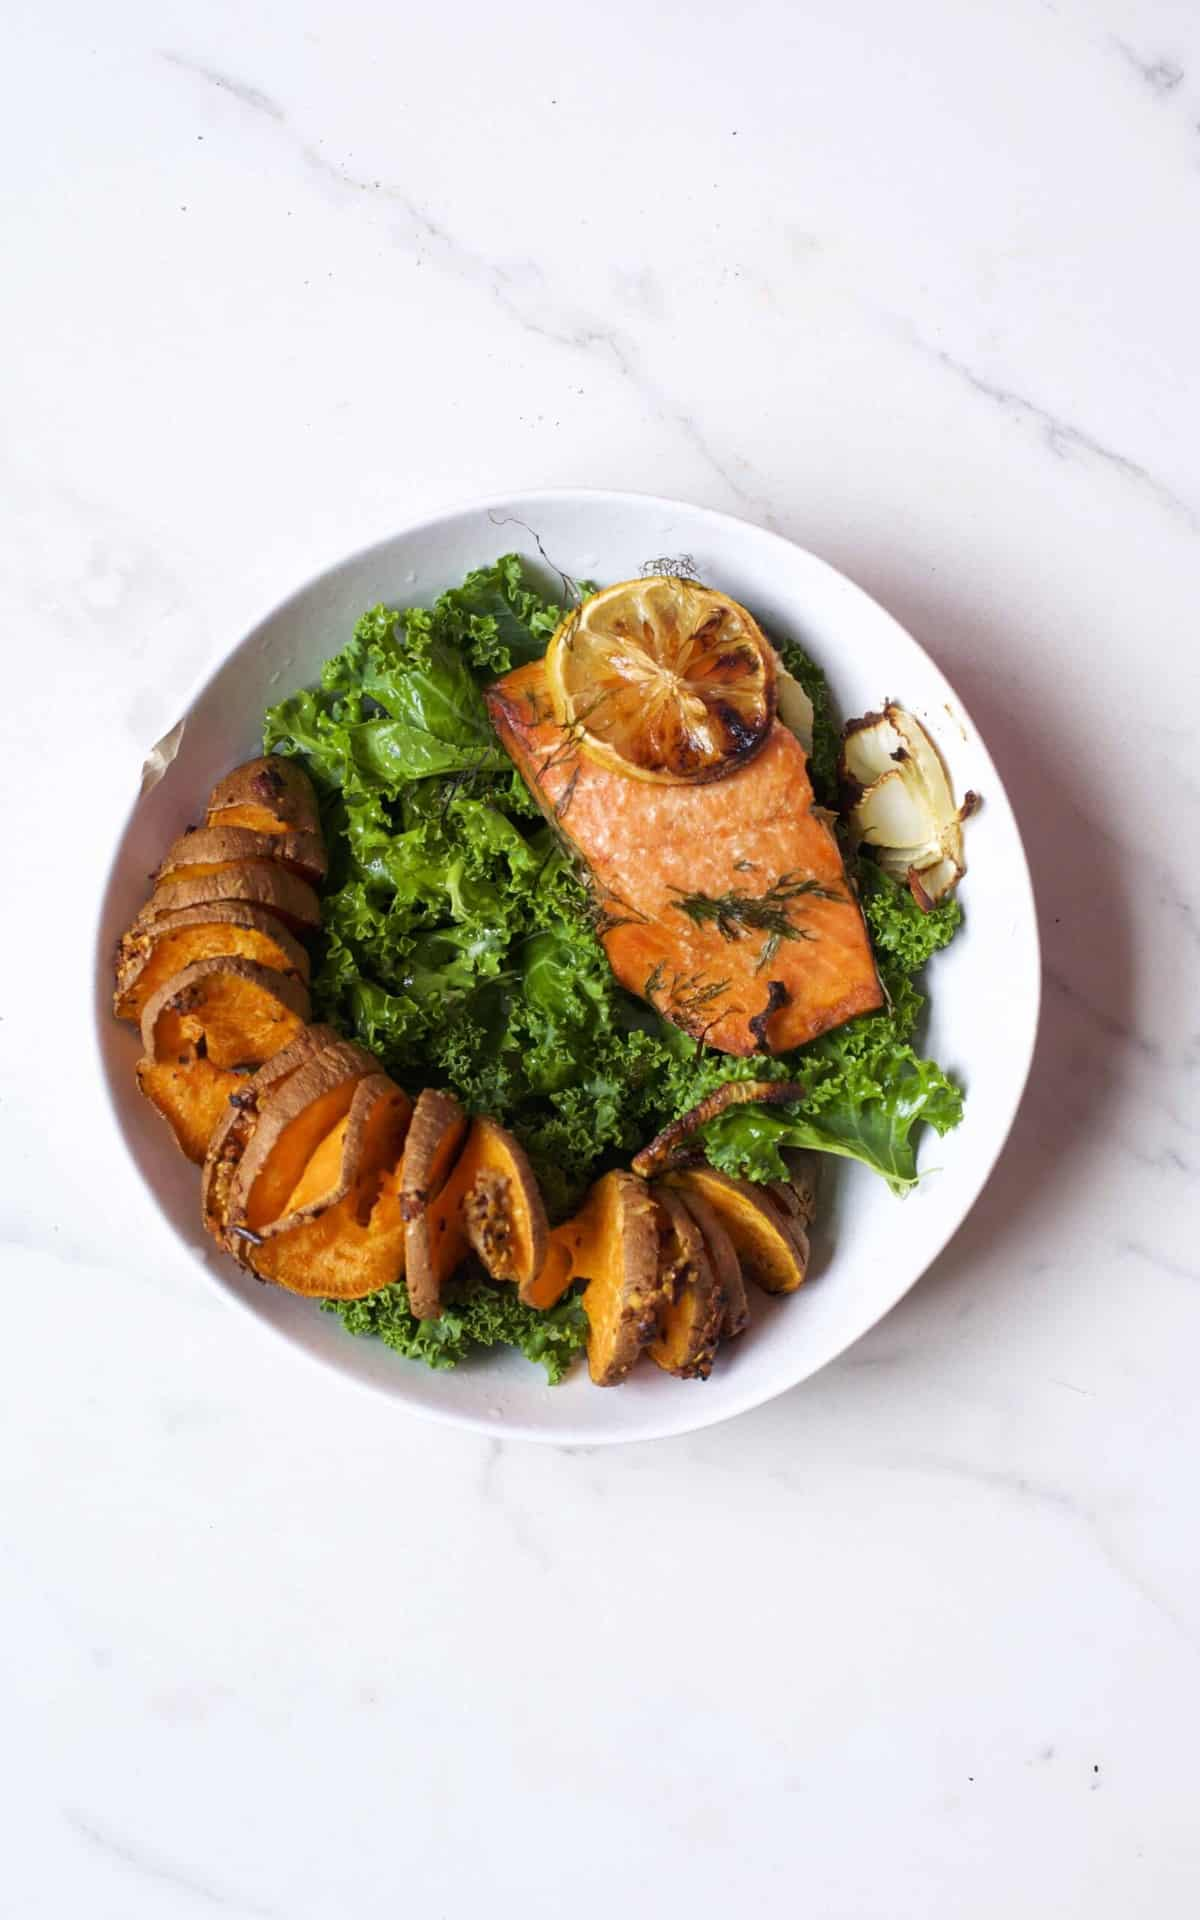 Grilled salmon with cake and baked sweet potato in a bowl